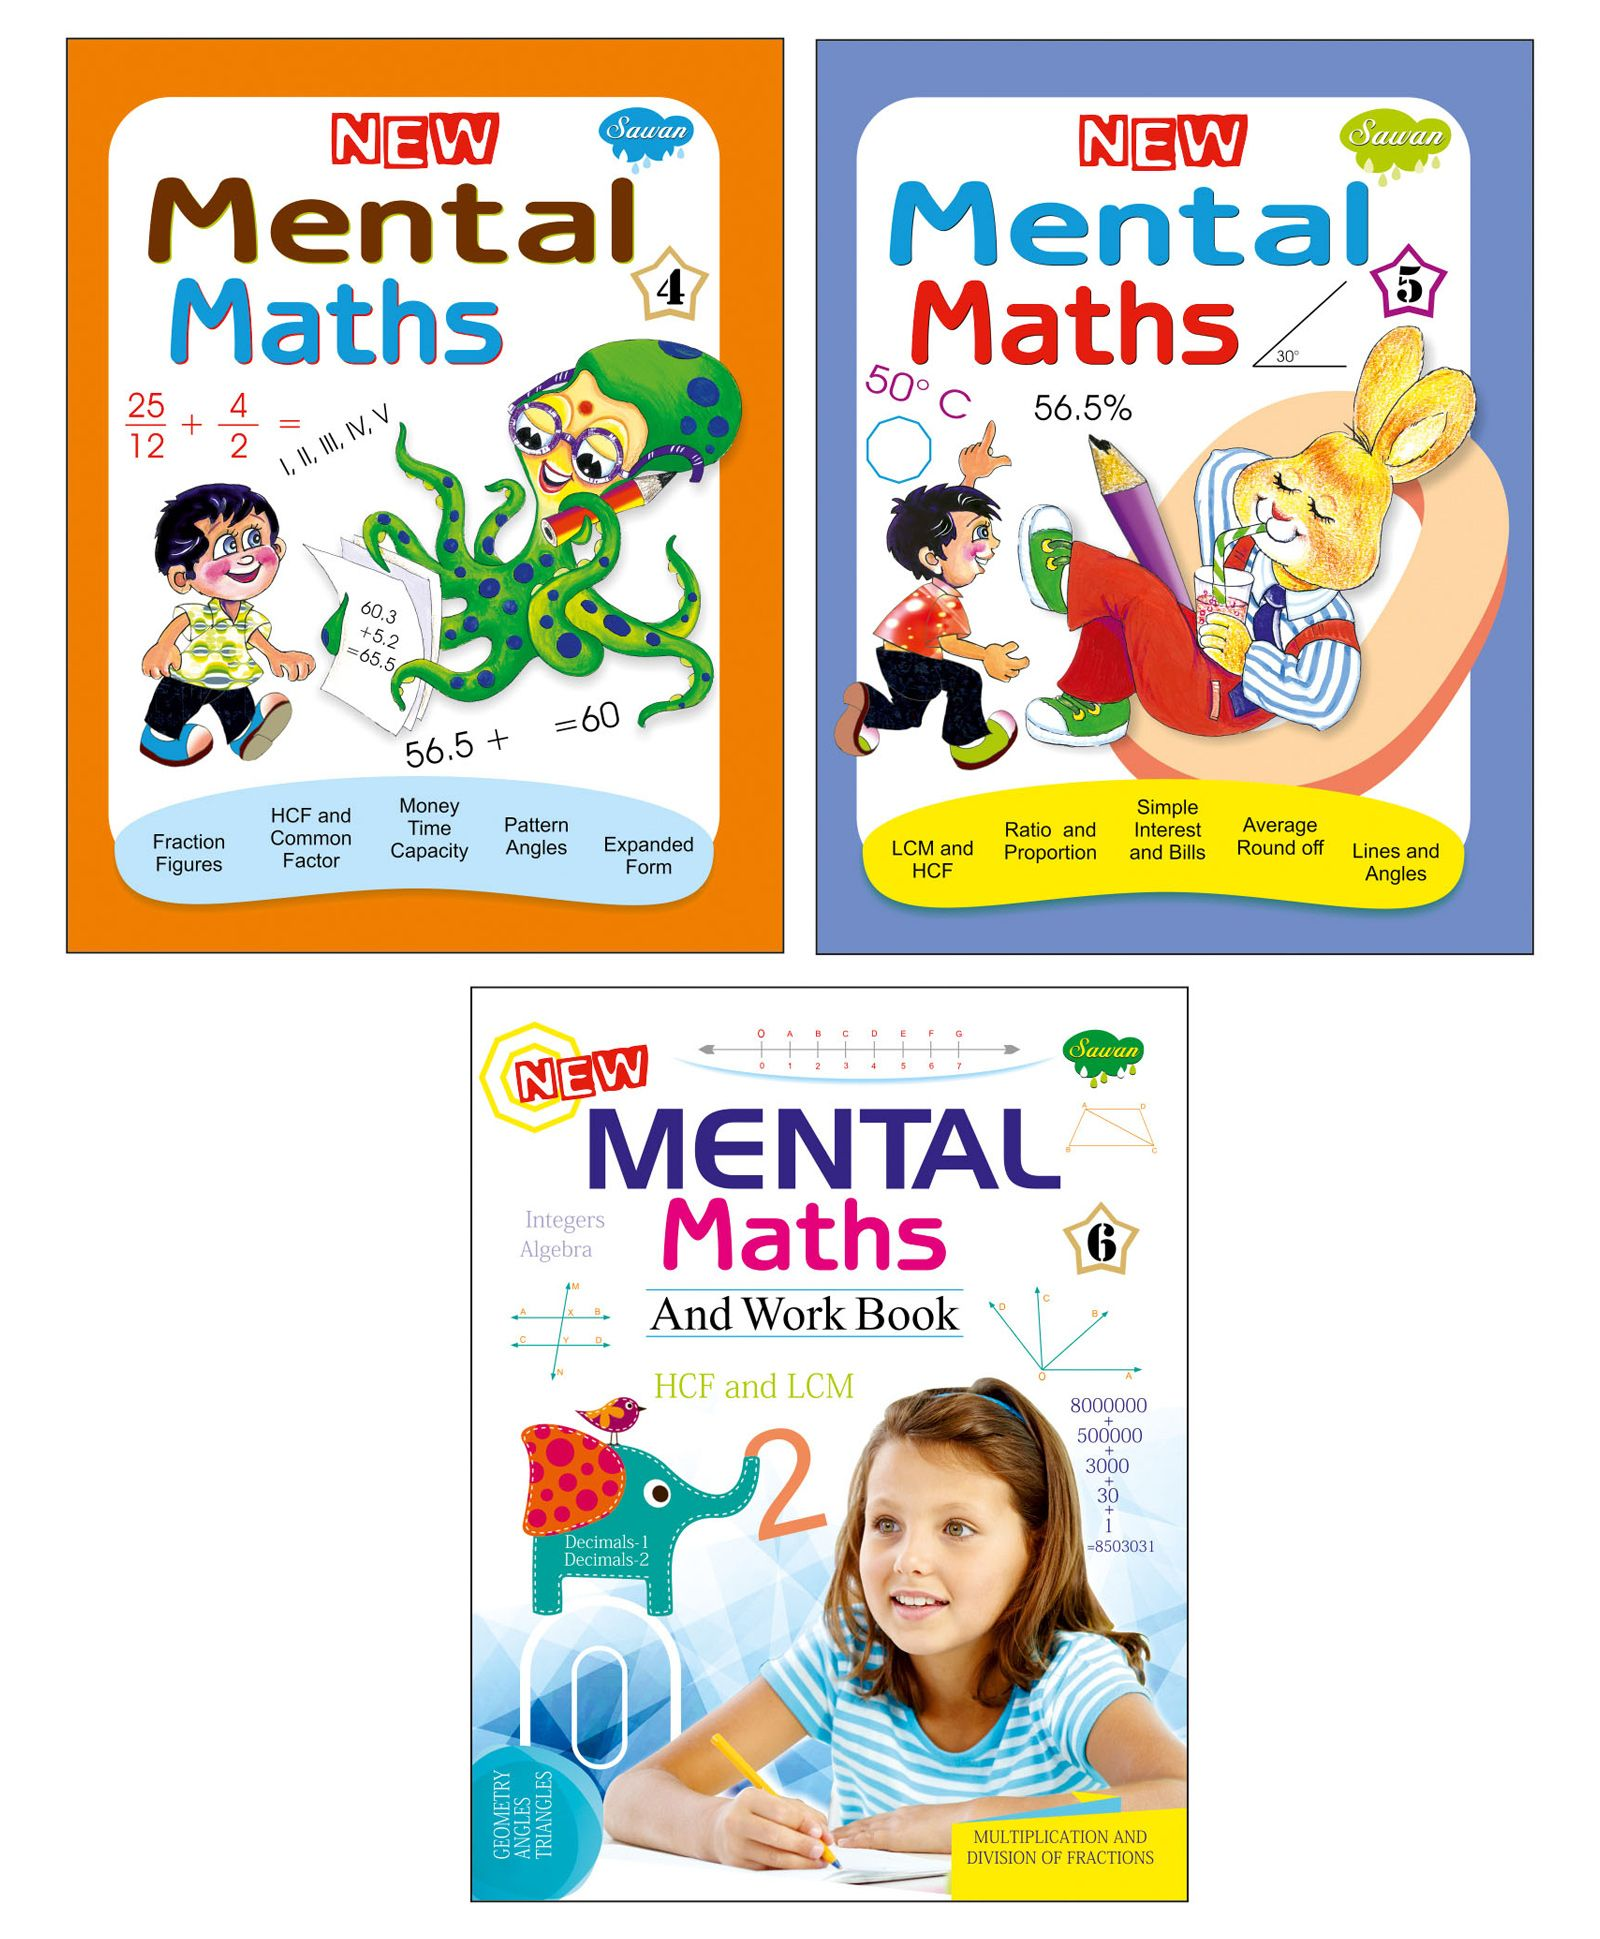 Sawan Mental Maths Books Level 4 5 6 Set of 3 English Online in India, Buy  at Best Price from Firstcry com - 1904067